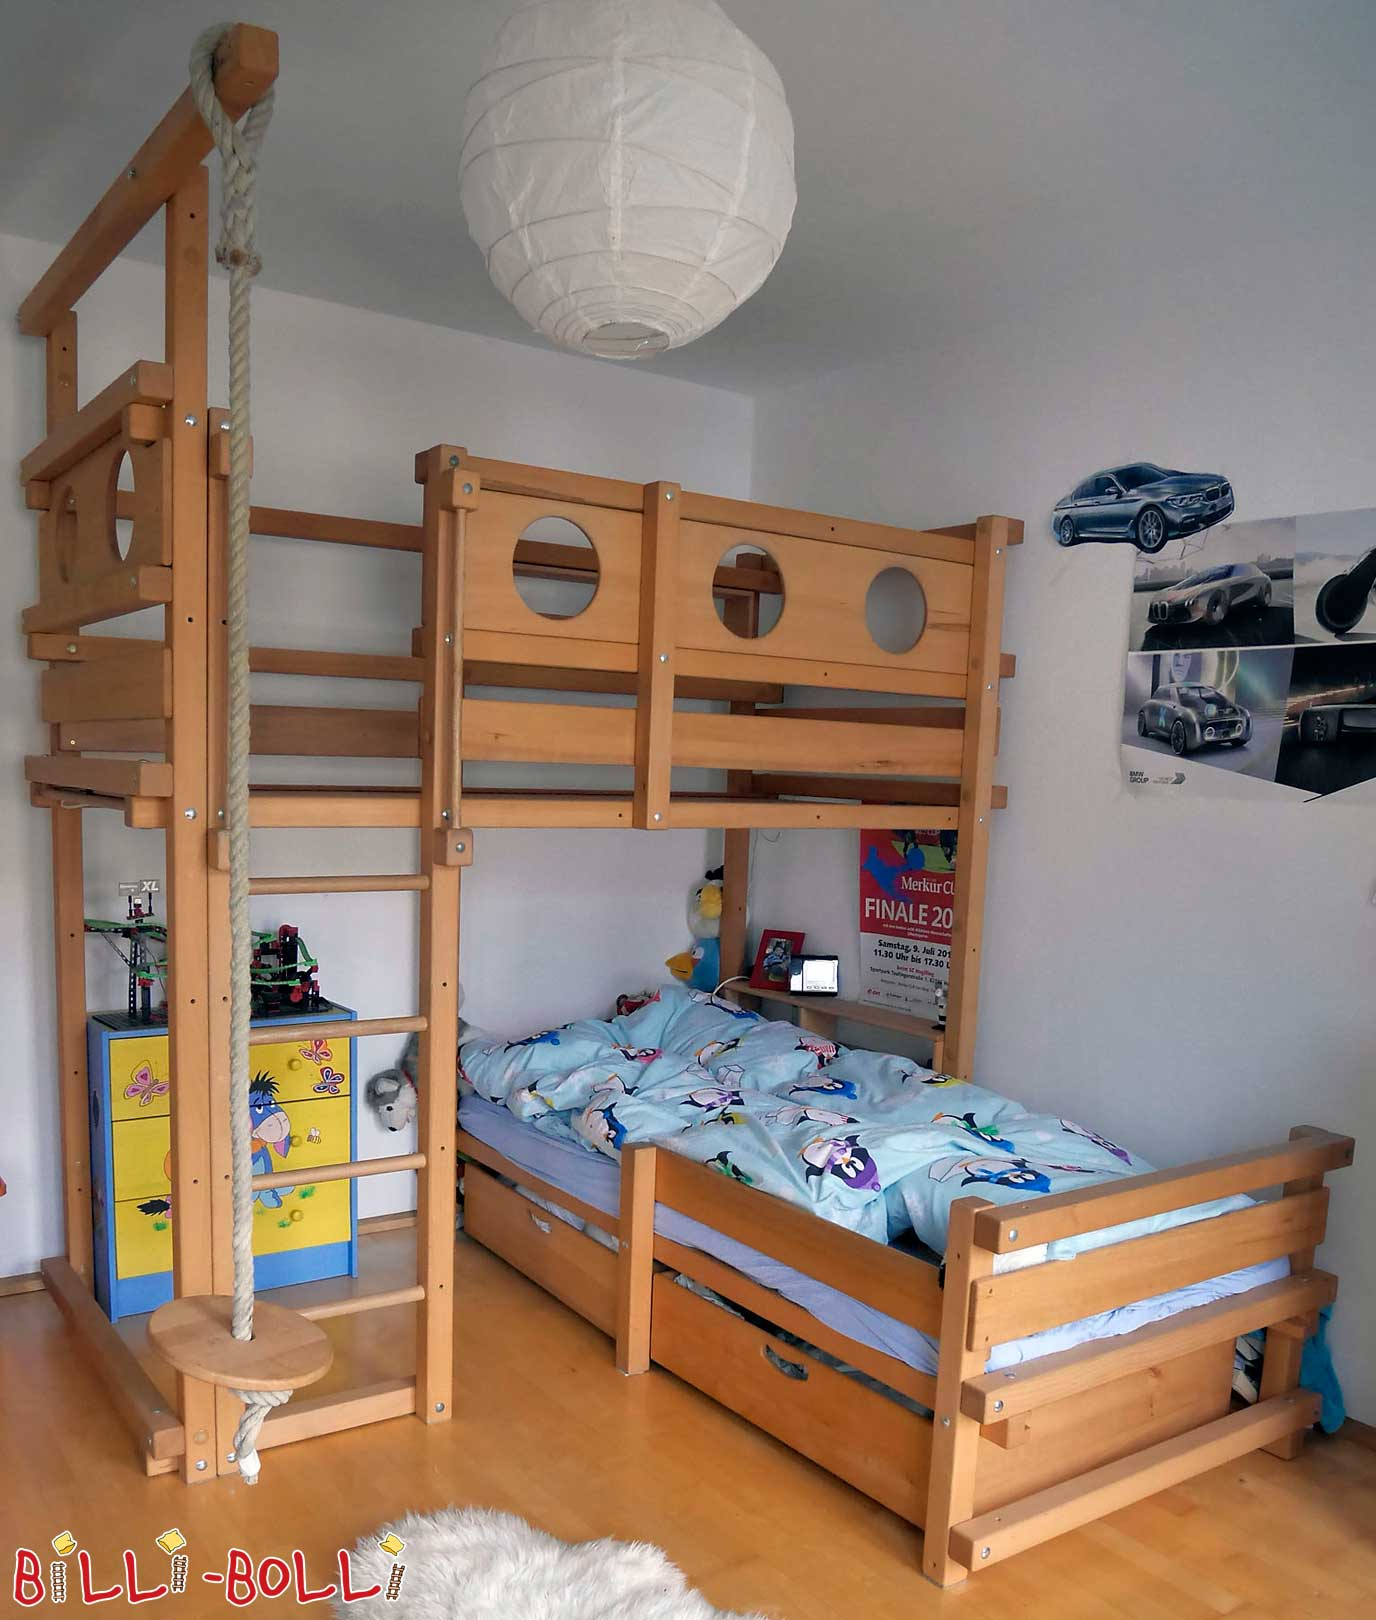 secondhand seite 23 billi bolli kinderm bel. Black Bedroom Furniture Sets. Home Design Ideas